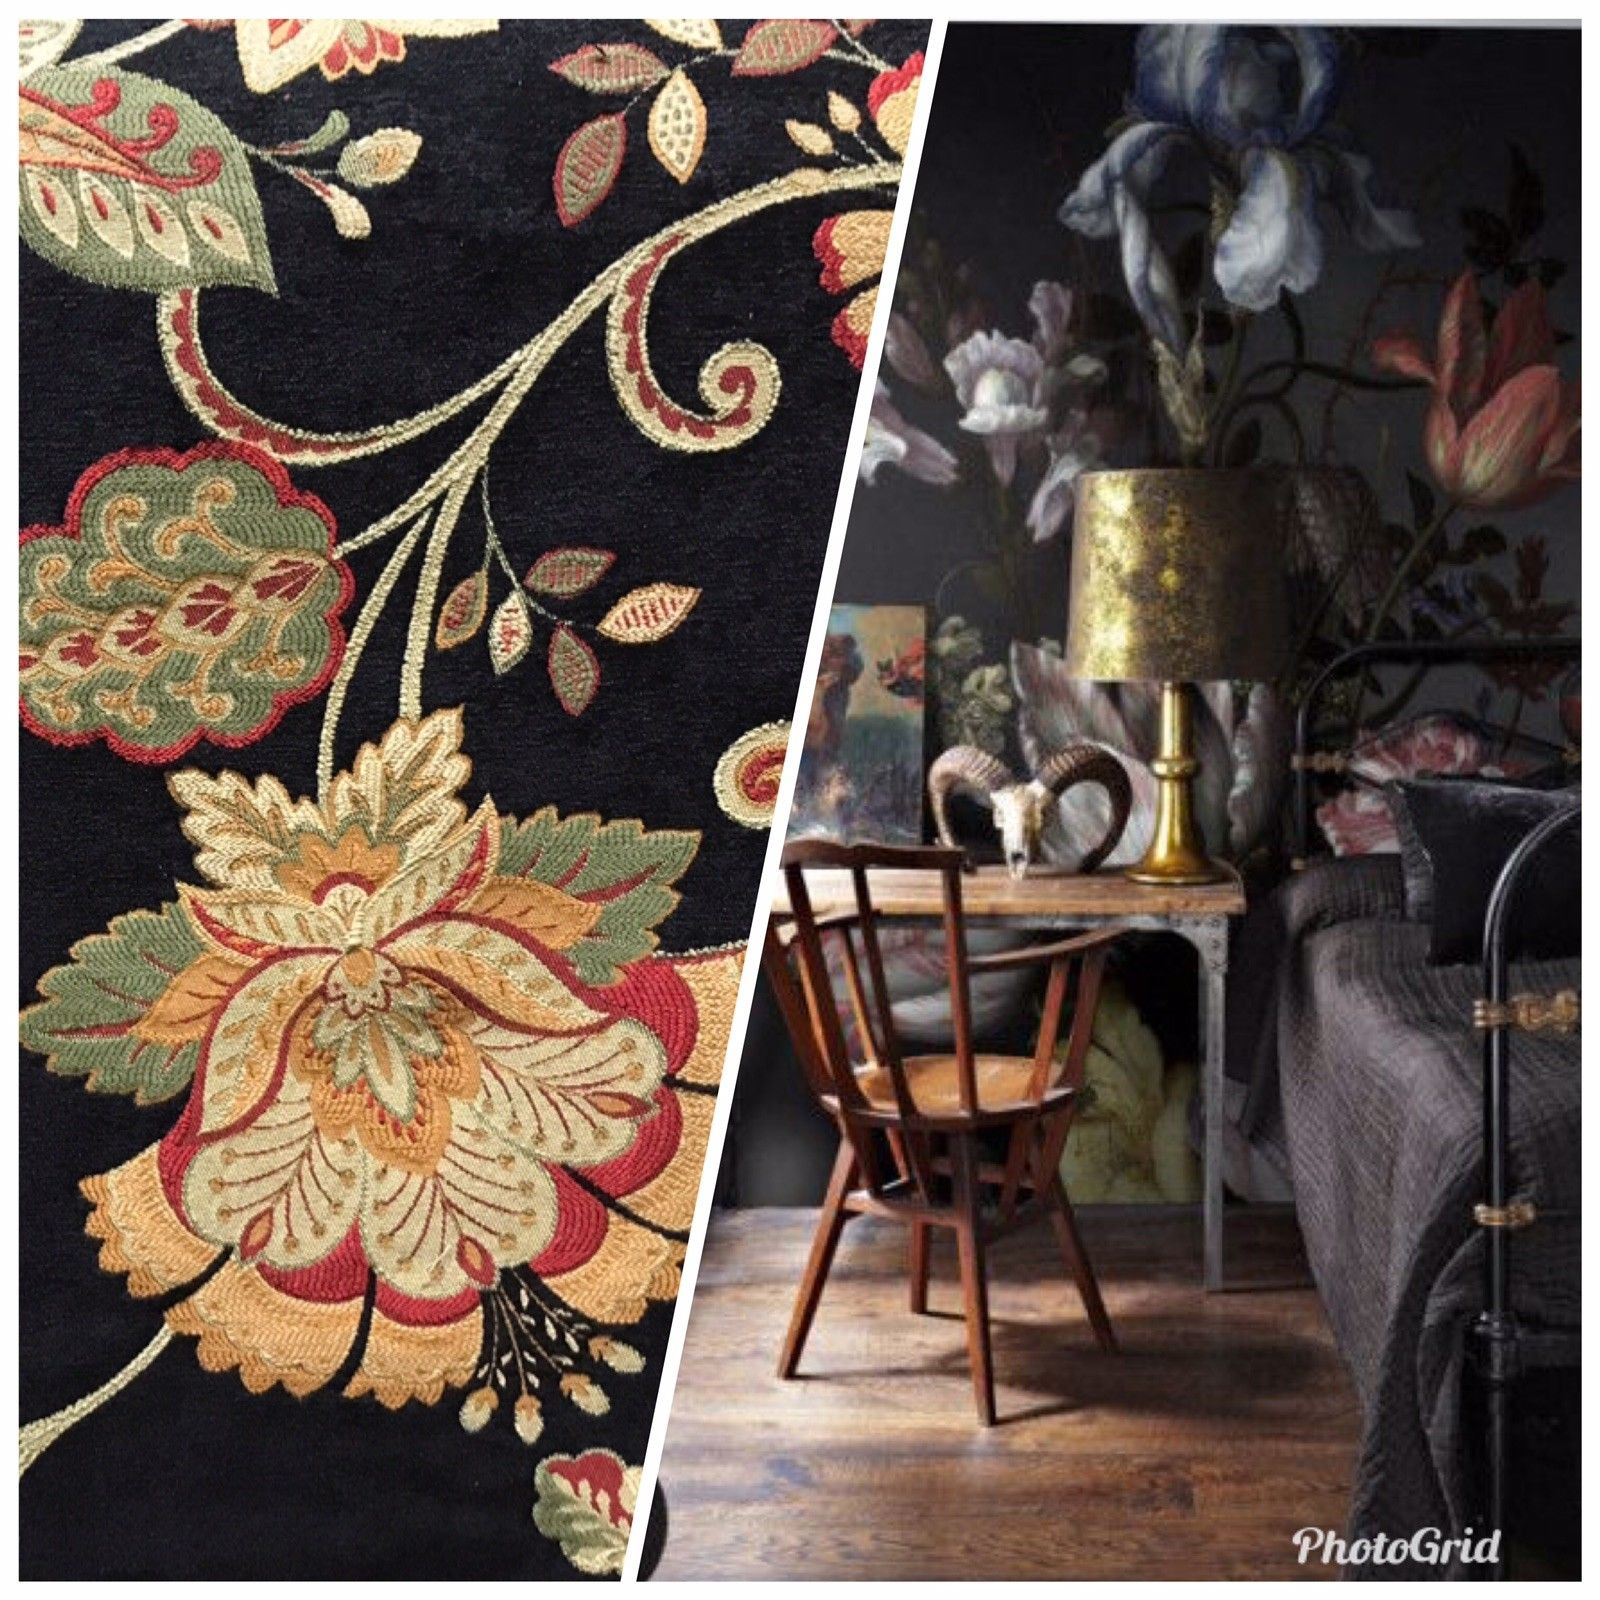 Designer Velvet Chenille Upholstery Decorating Fabric - Black Floral - Fancy Styles Fabric Pierre Frey Lee Jofa Brunschwig & Fils